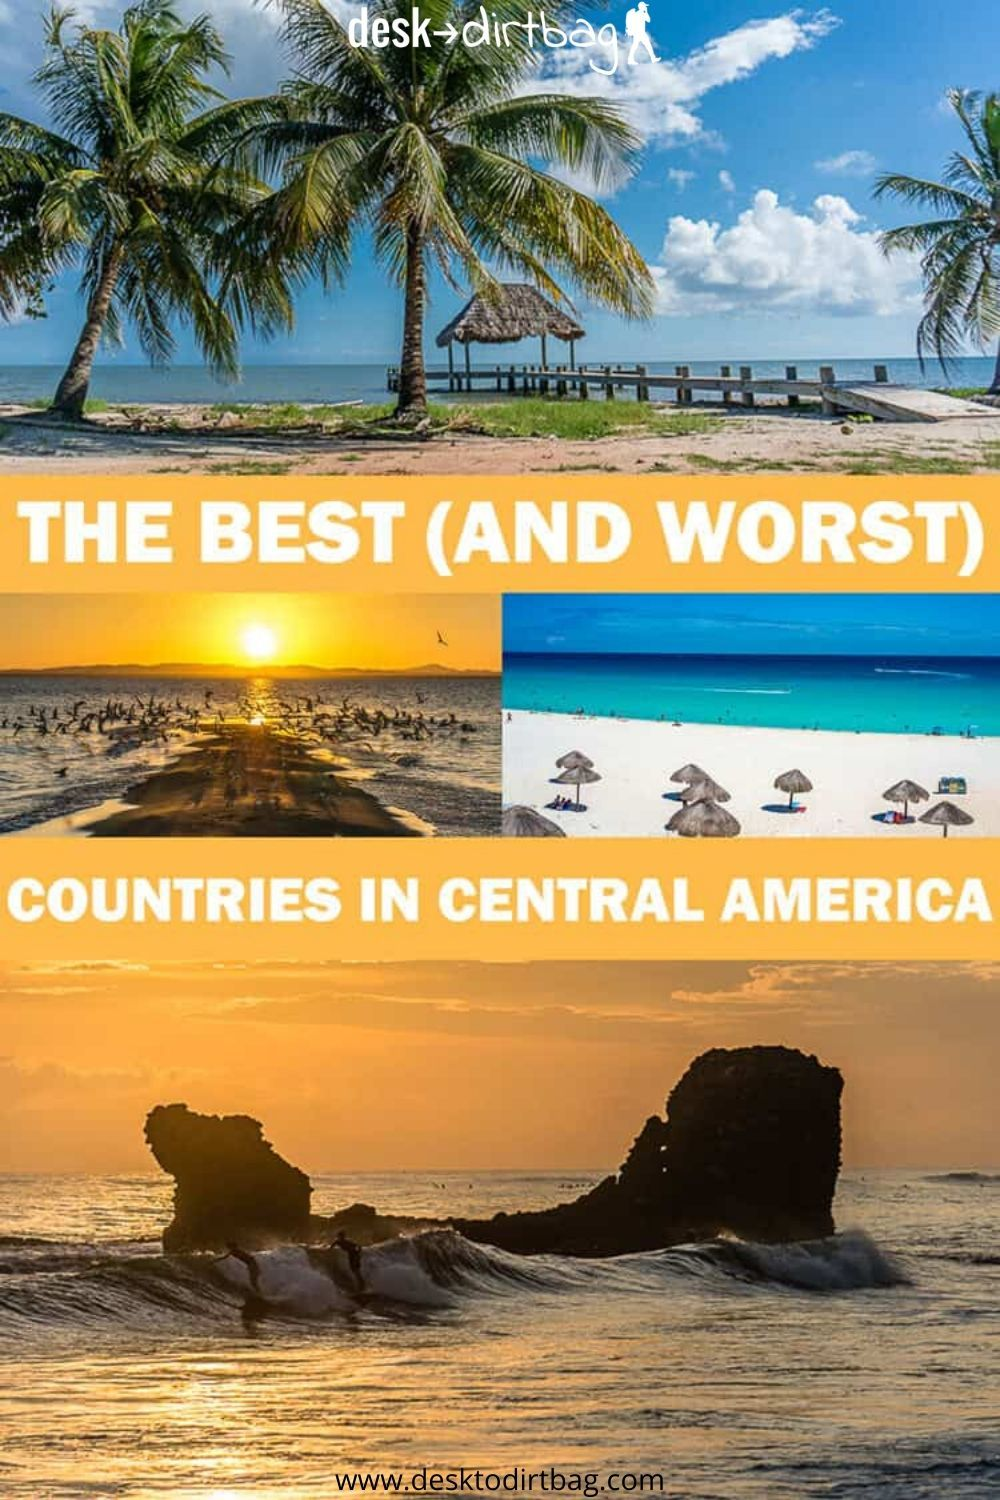 Ranking the Best Countries to Visit in Central America (And the Worst!)